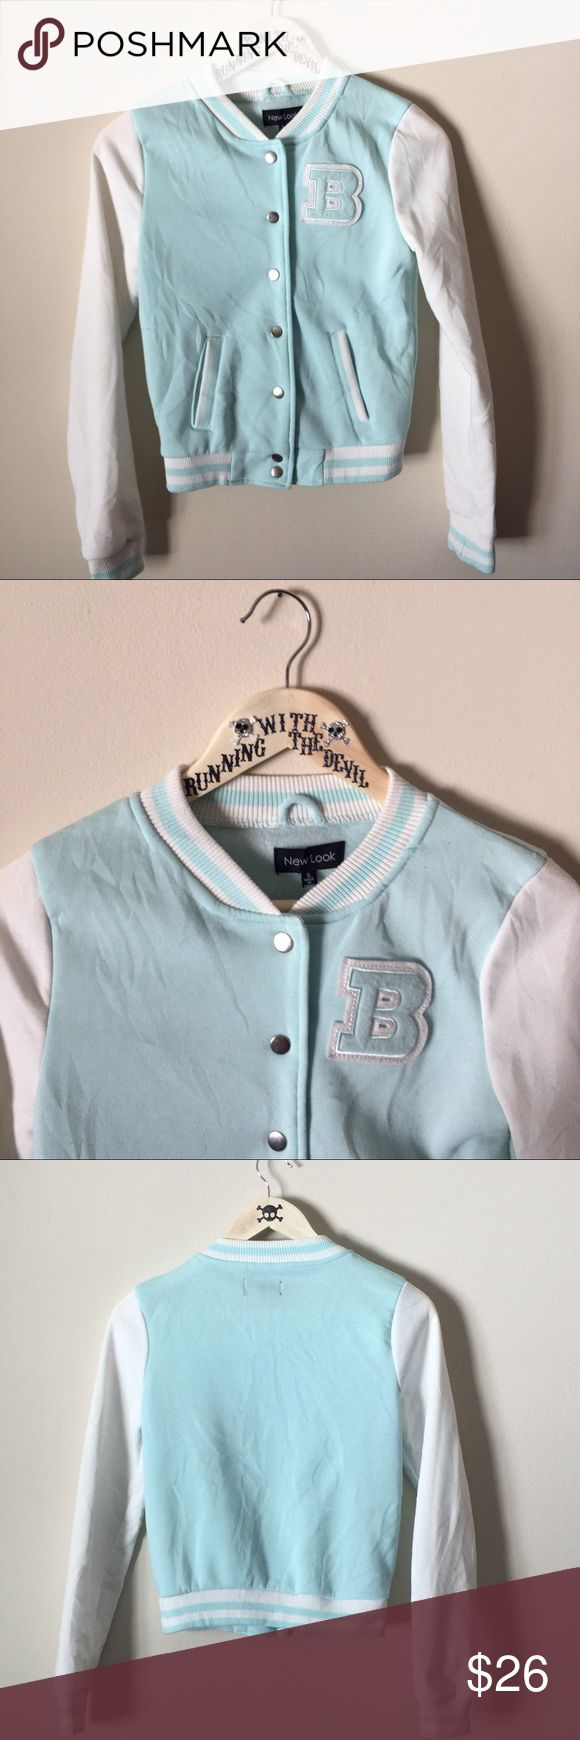 LIKE NEW! • Light blue + white letterman jacket • LIKE NEW! LIGHT BLUE & WHITE LETTERMAN JACKET   • made by NEW LOOK • light, comfortable, clean • only worn one time, excellent condition  • SIZE: SMALL New Look Jackets & Coats